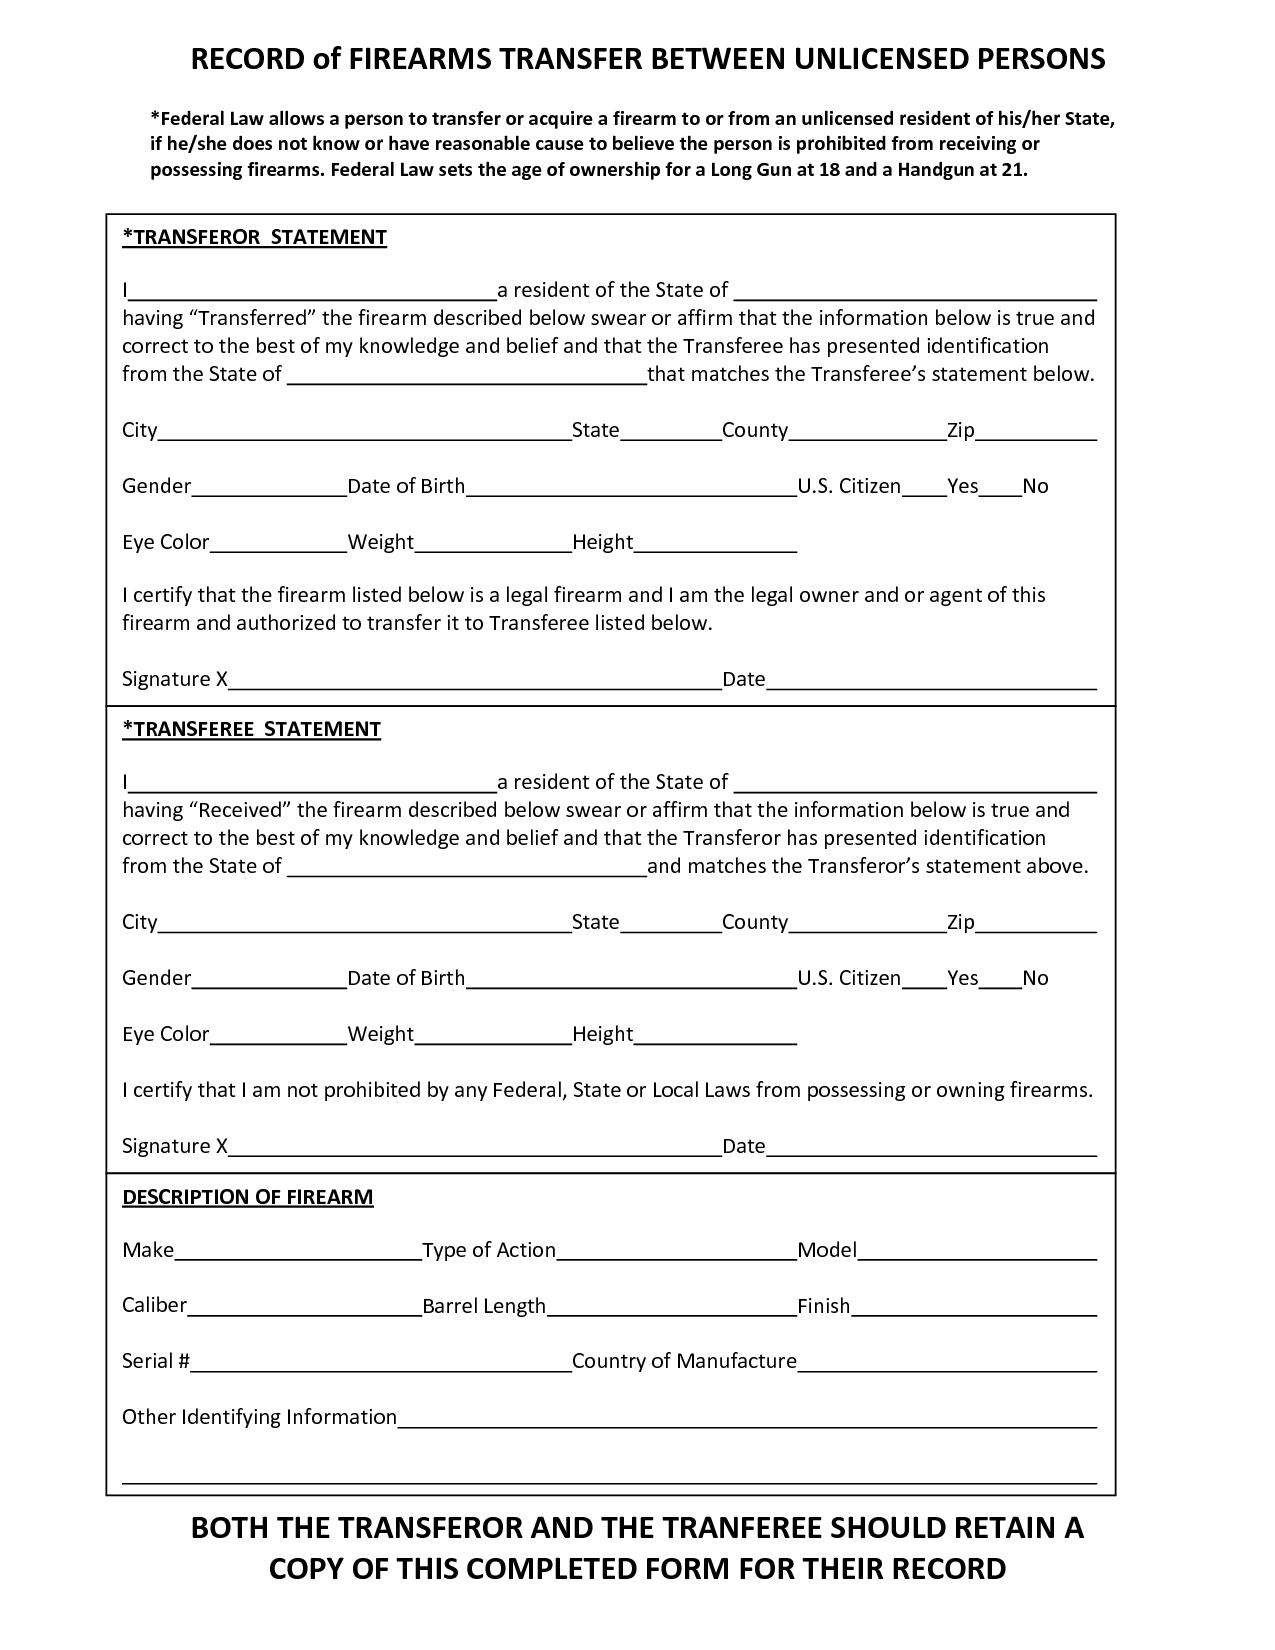 gun trust forms | RECORD of FIREARMS TRANSFER BETWEEN Bear Arms ...